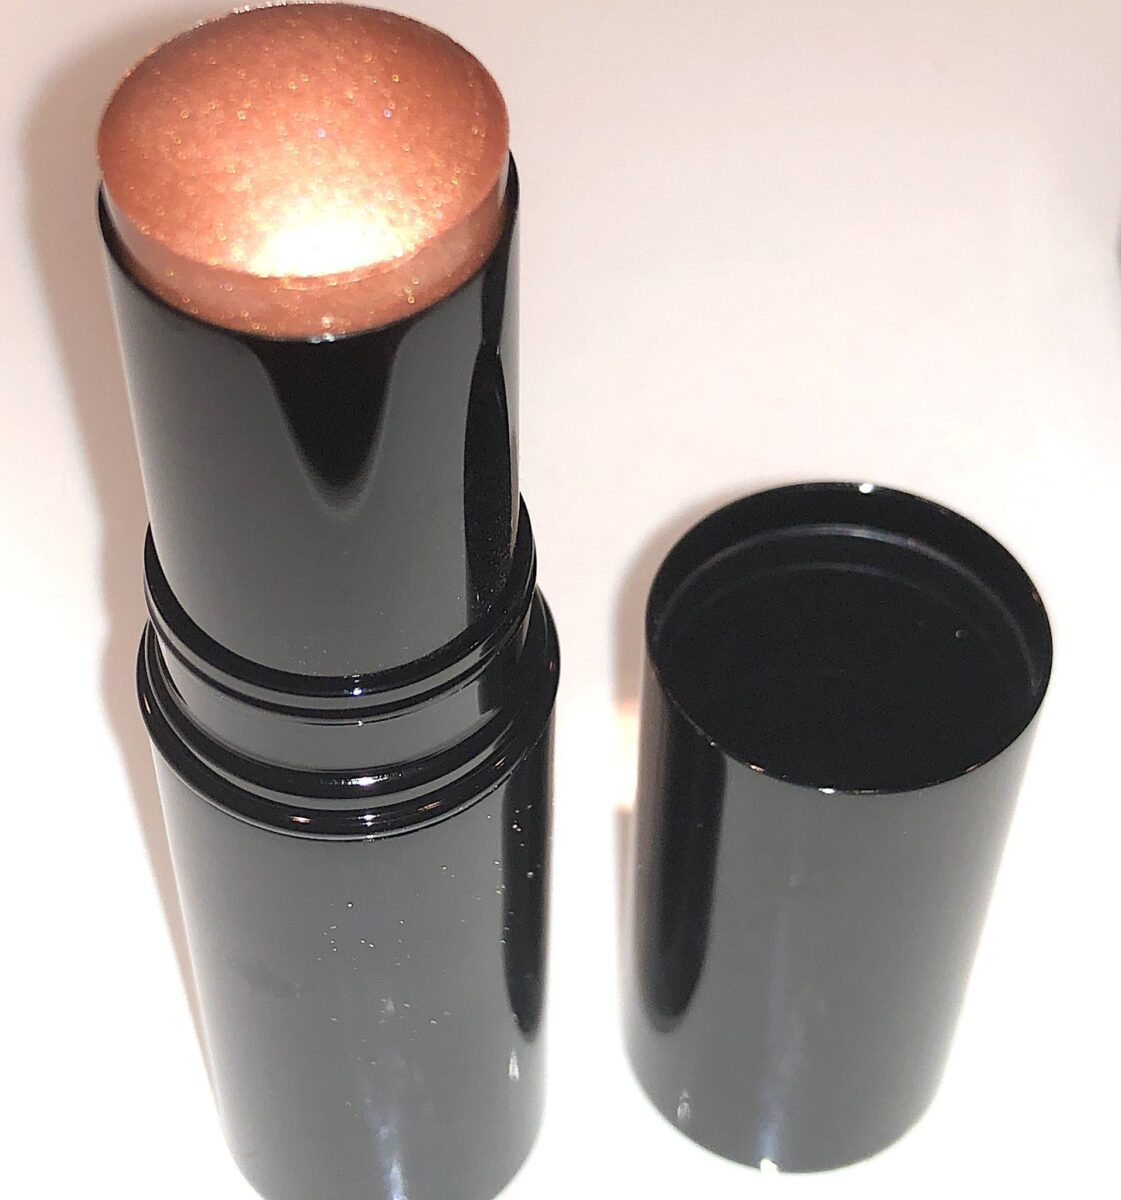 THE TUBE FOR THE BAUME ESSENTIAL HIGHLIGHTER GLOW STICK